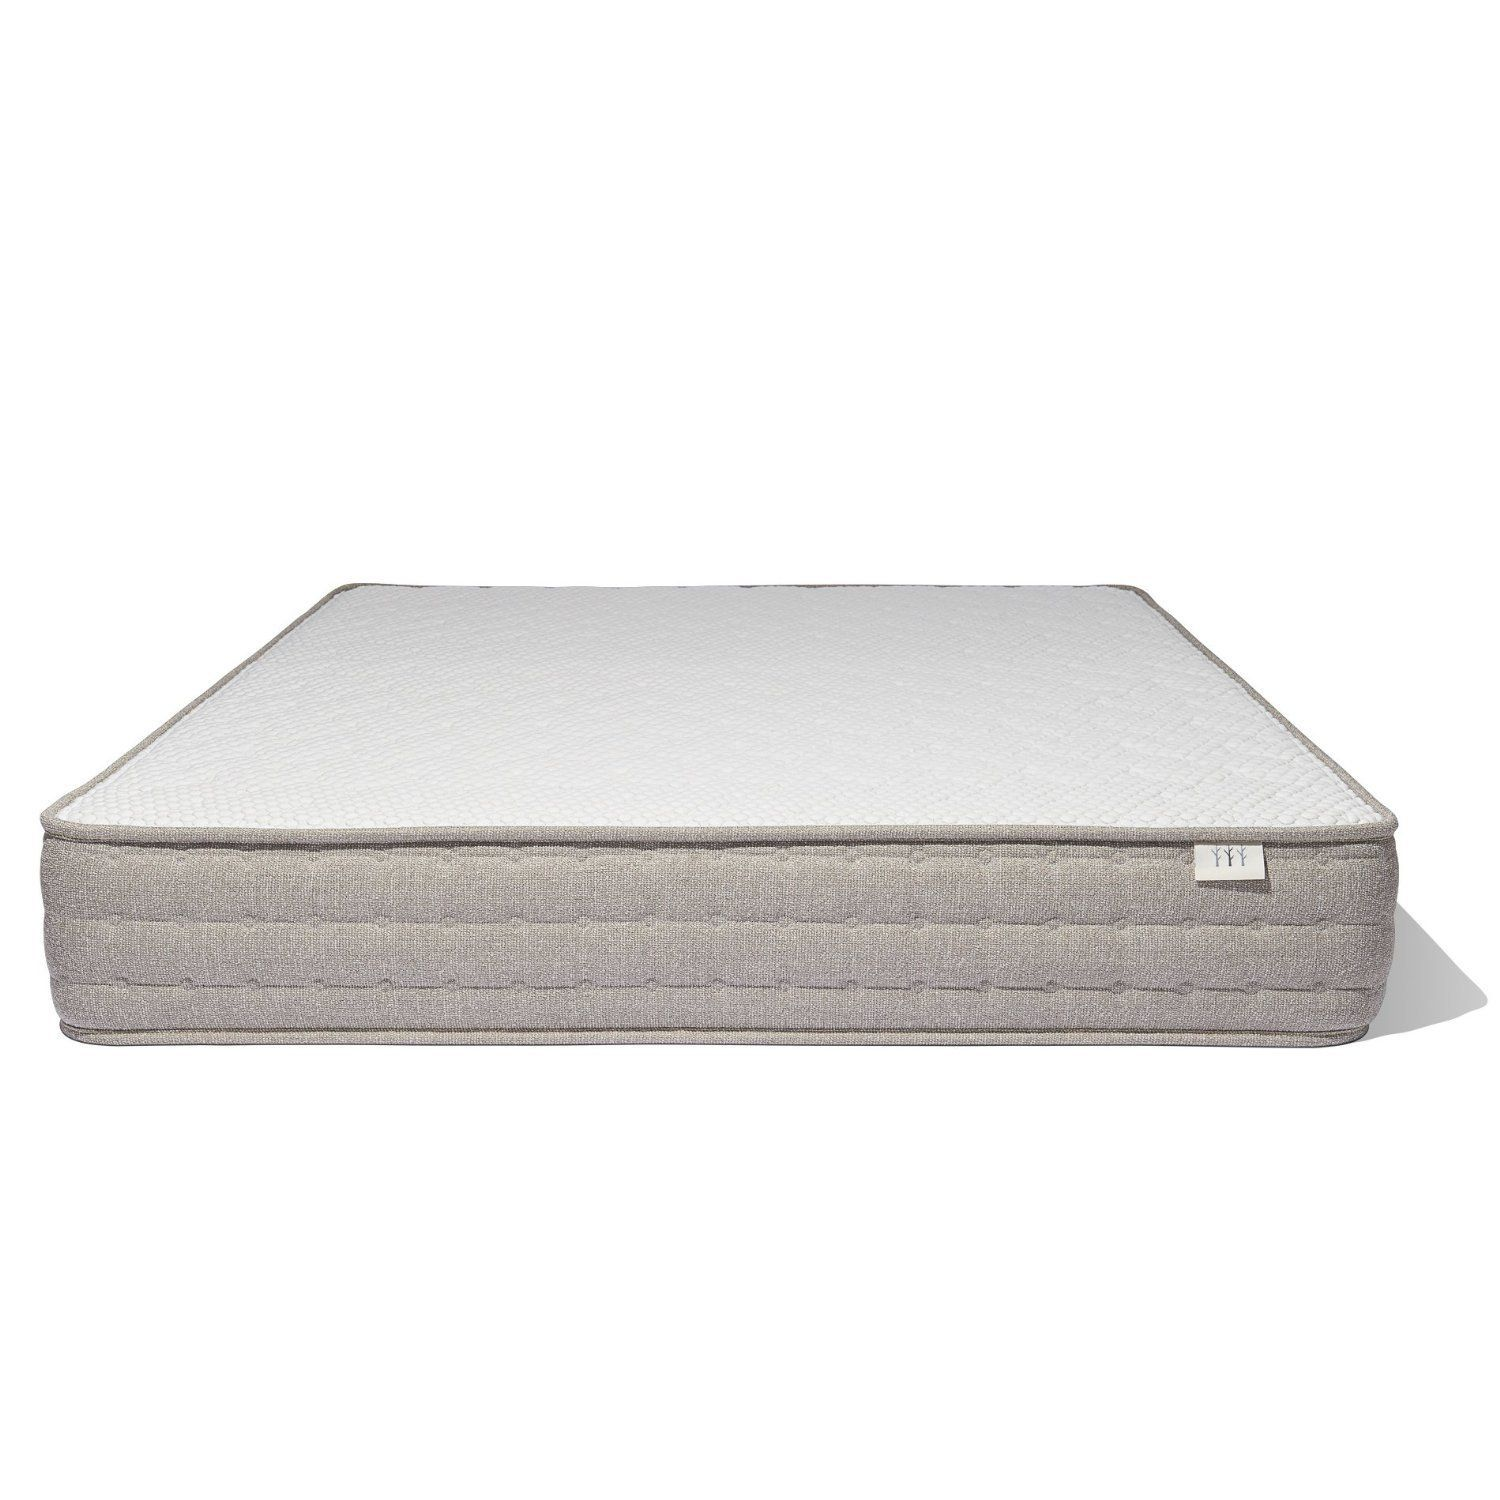 brentwood home solano natural latex mattress made in california